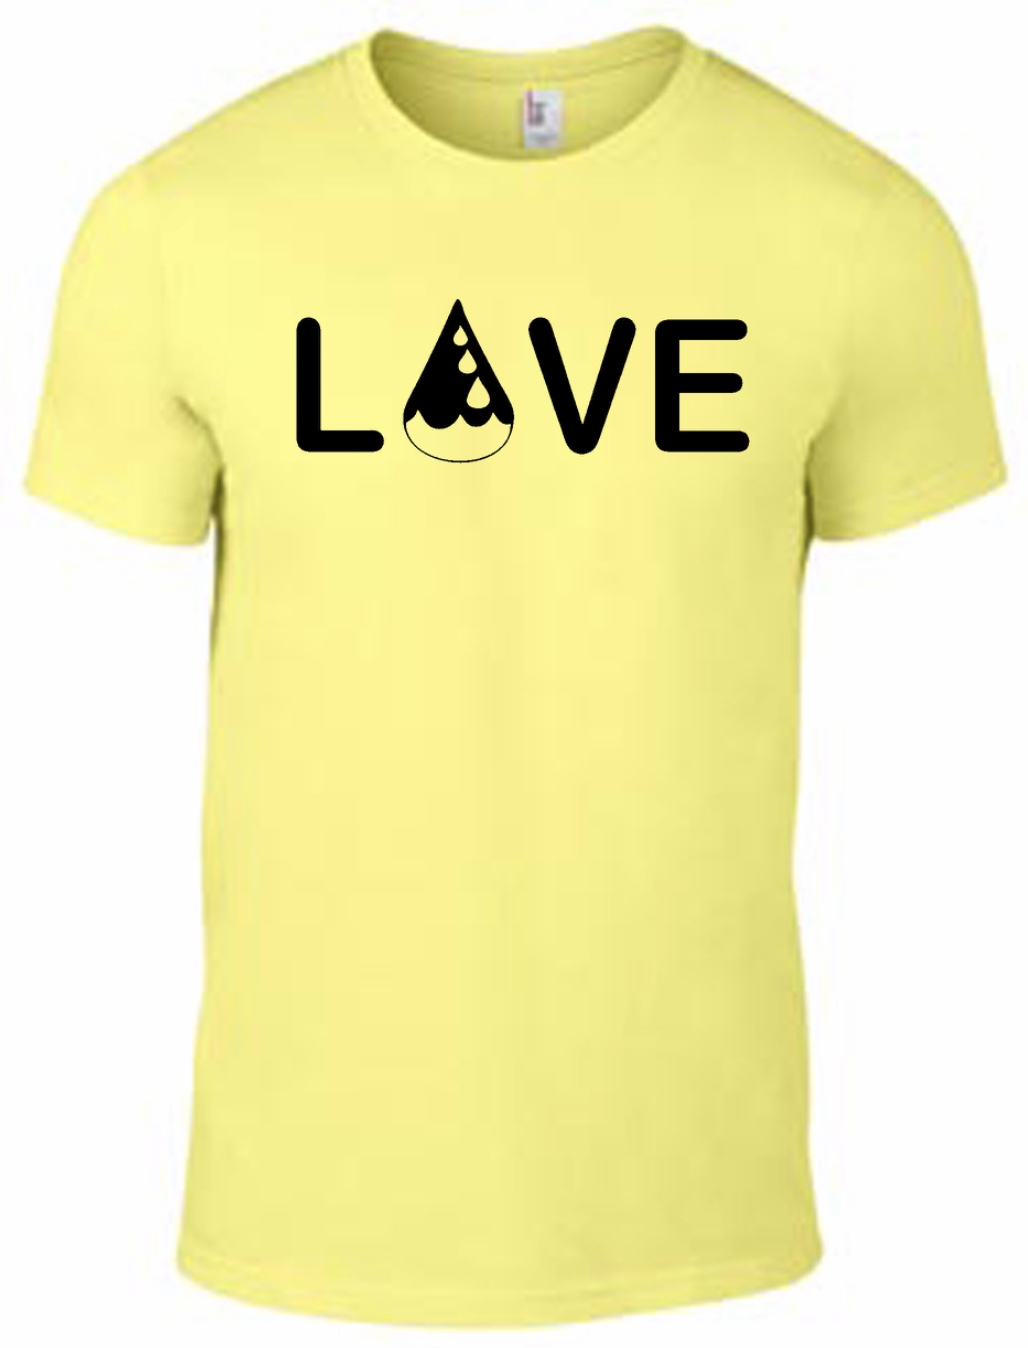 Drop of Love Tee - Yellow